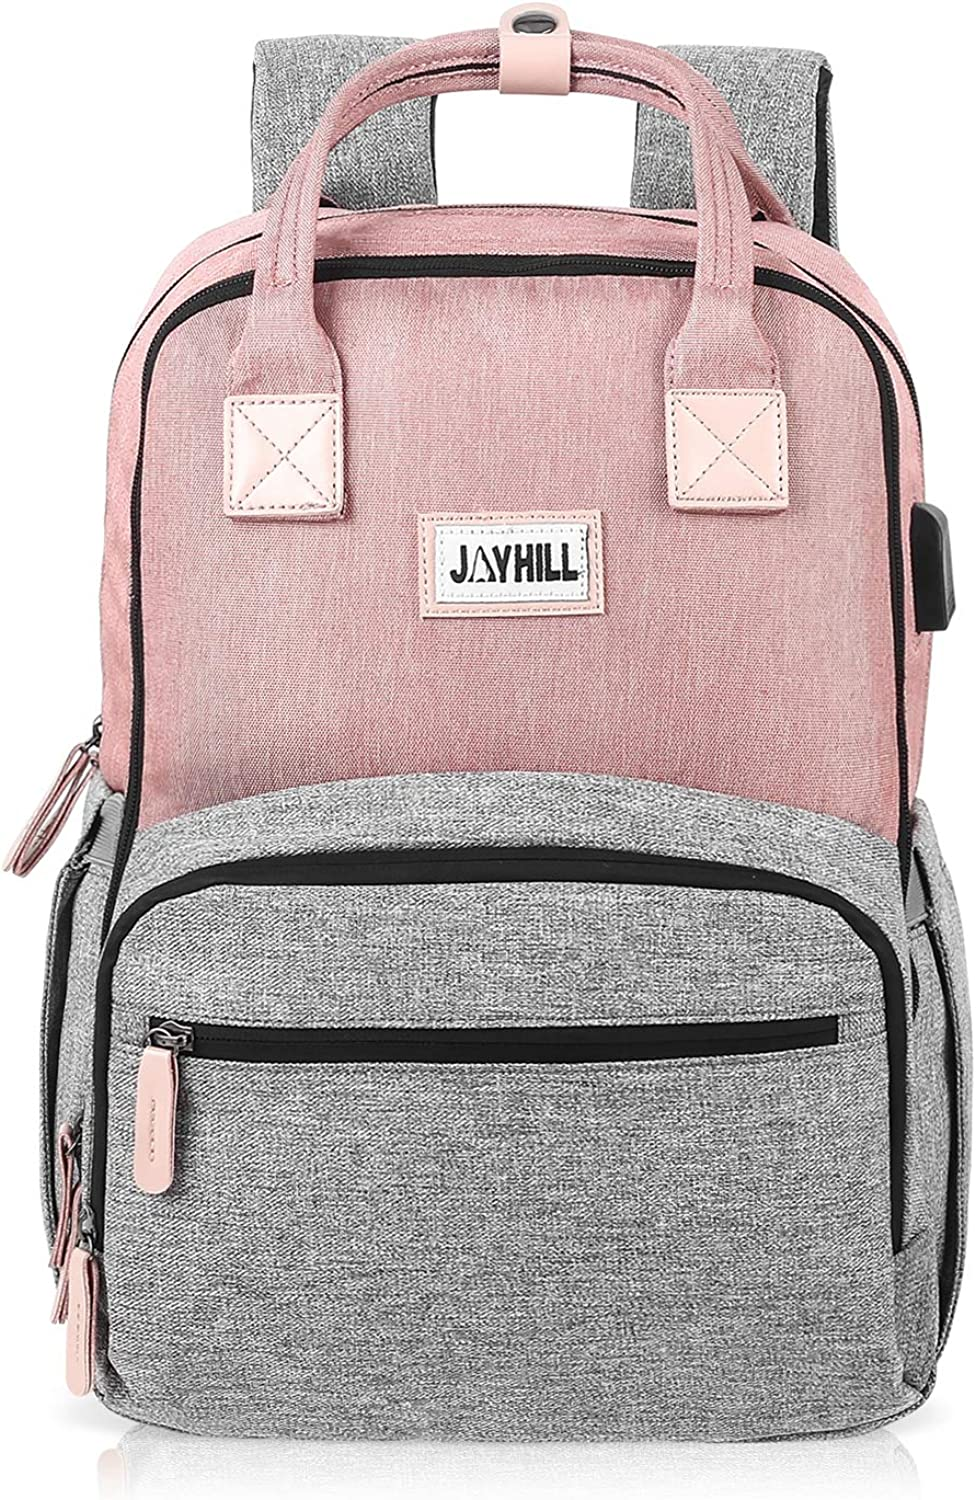 Travel Laptop Backpack for Women Men with USB Charging Port, Computer Backpack College School Backpack Fits 15.6 '' Laptop